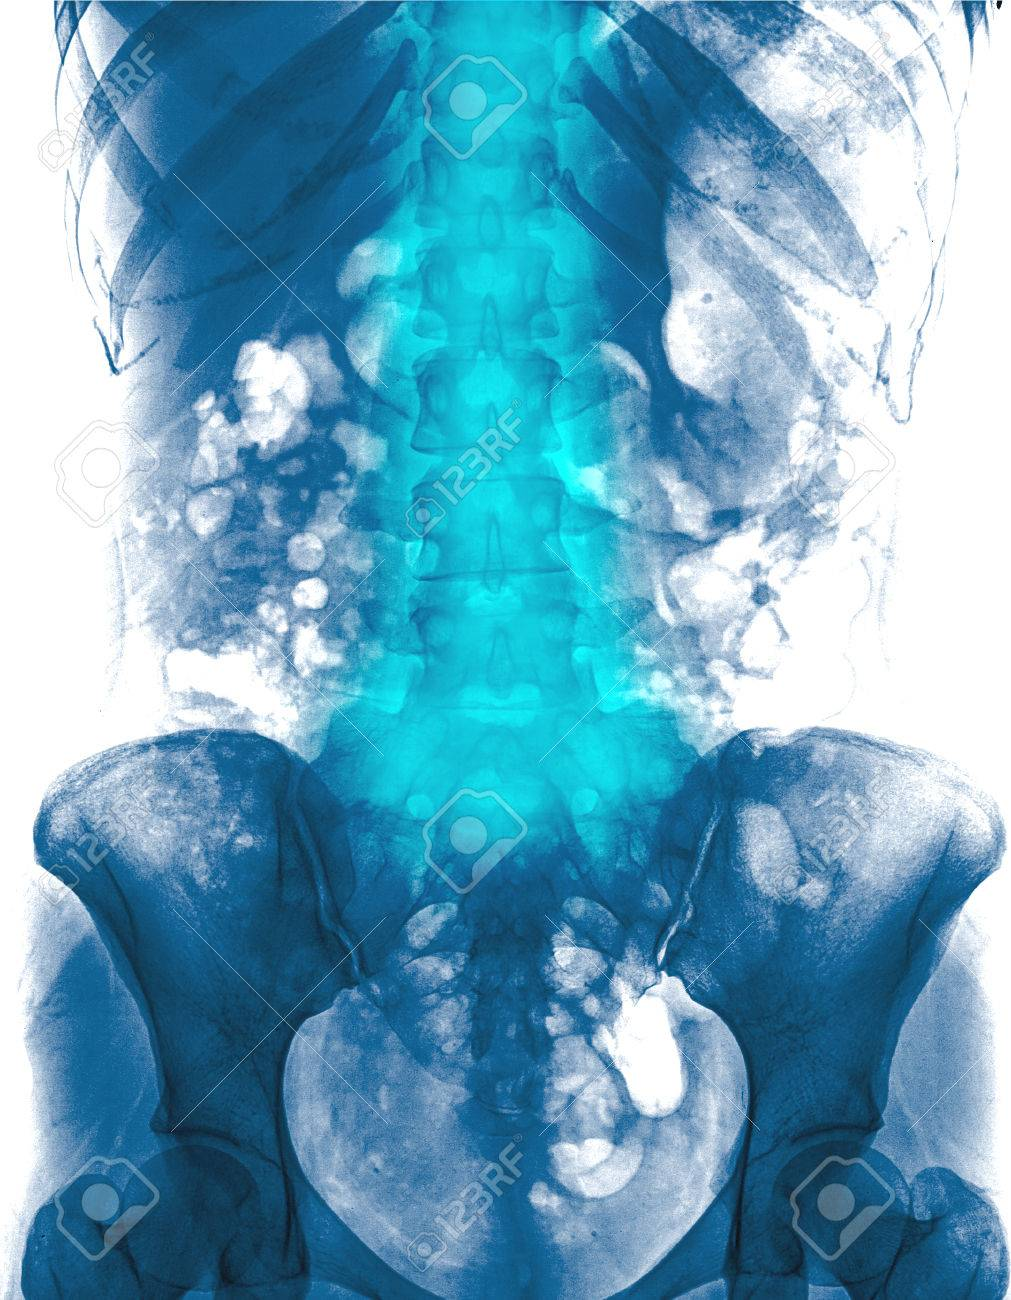 Lumbar Spine Of Woman And Inflammation At Lumbar Spine Low Stock